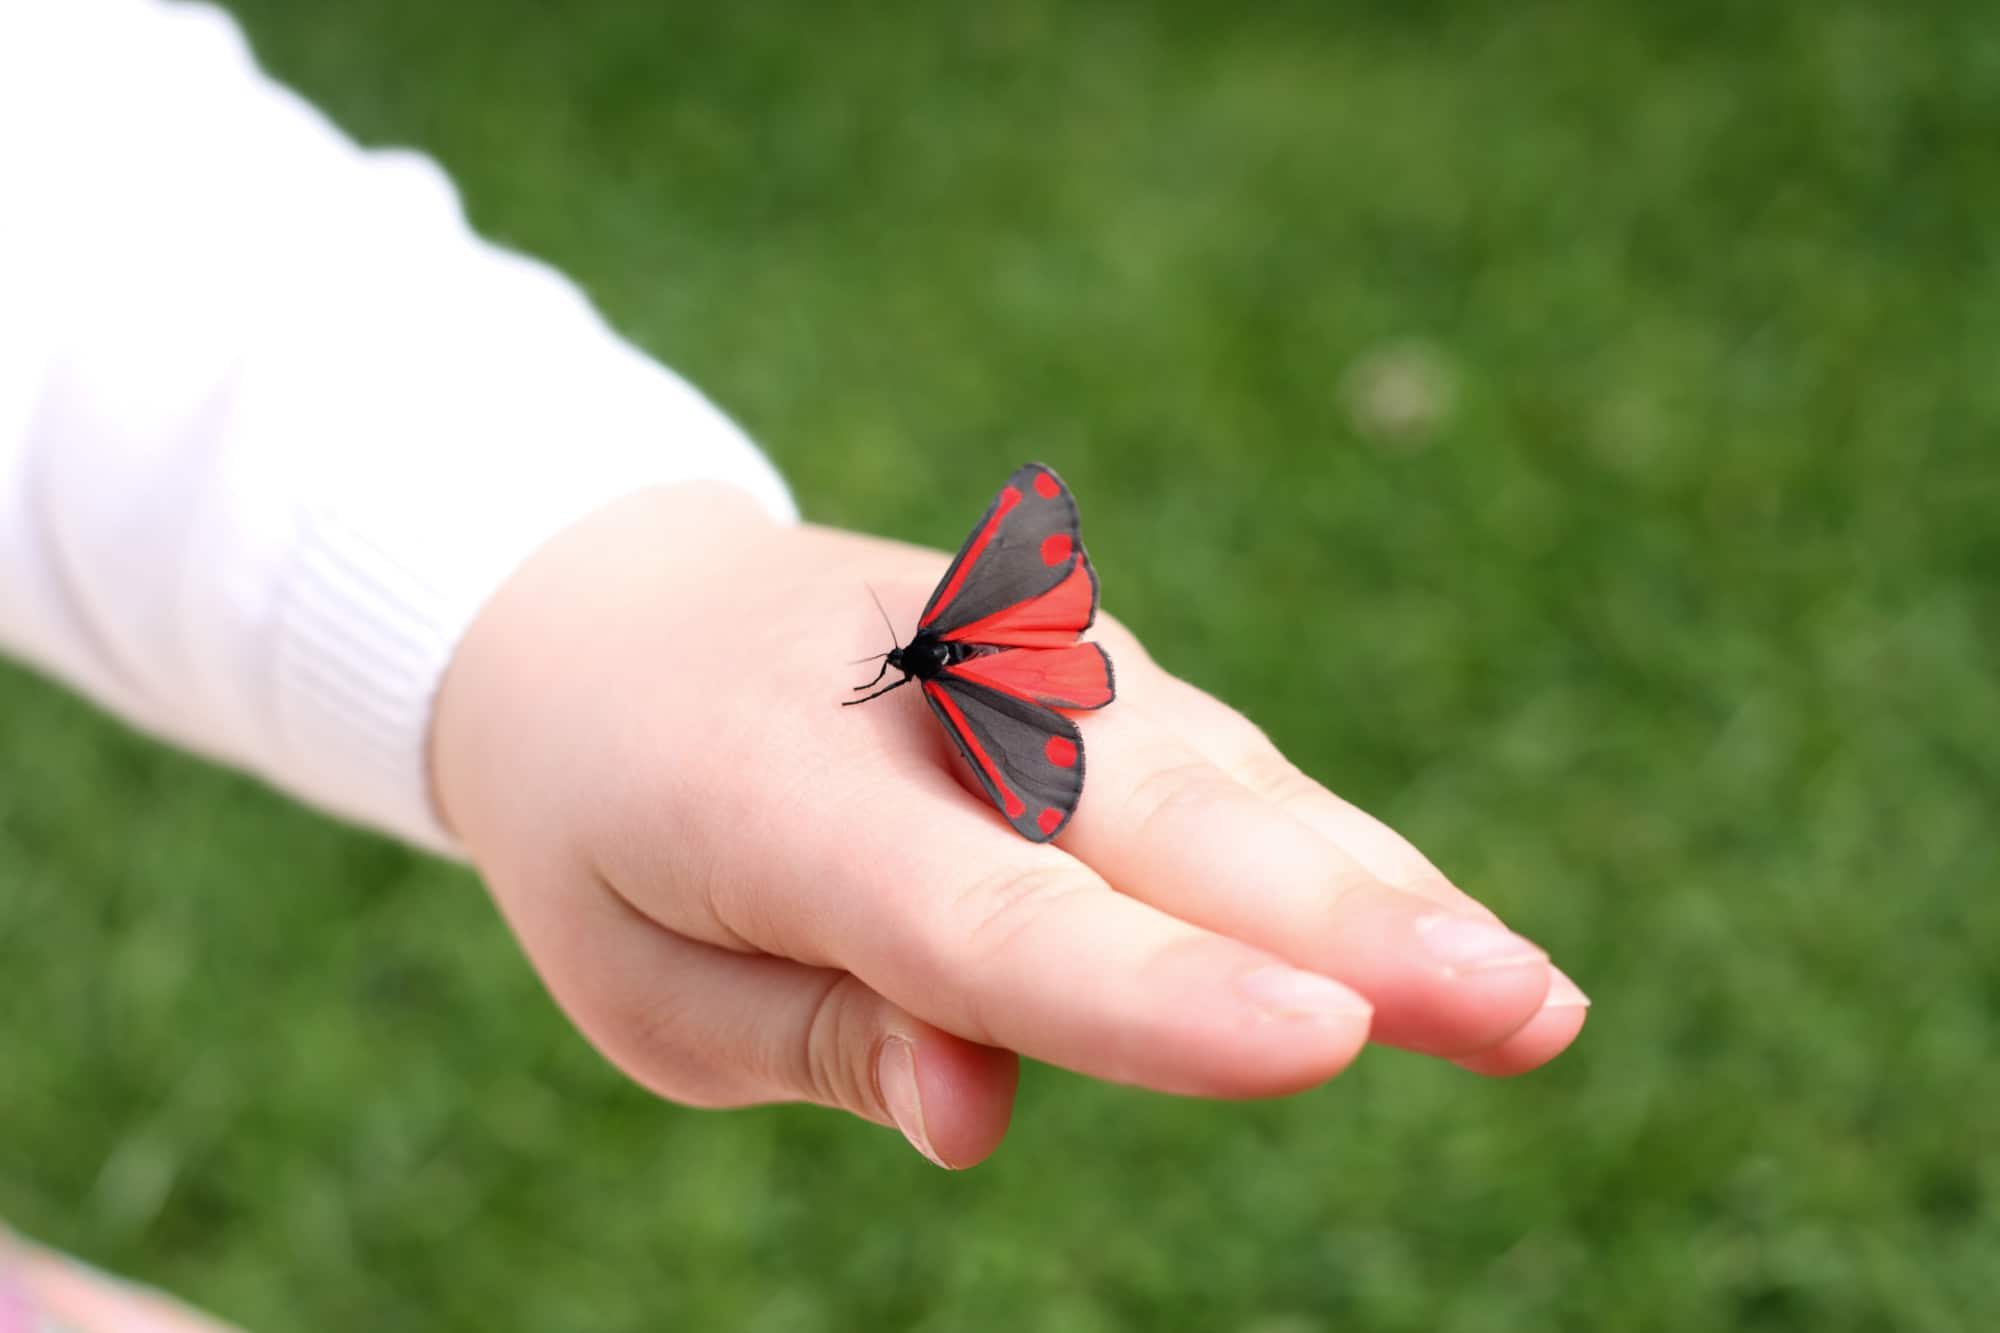 This red and black winged moth is a cinnabar moth